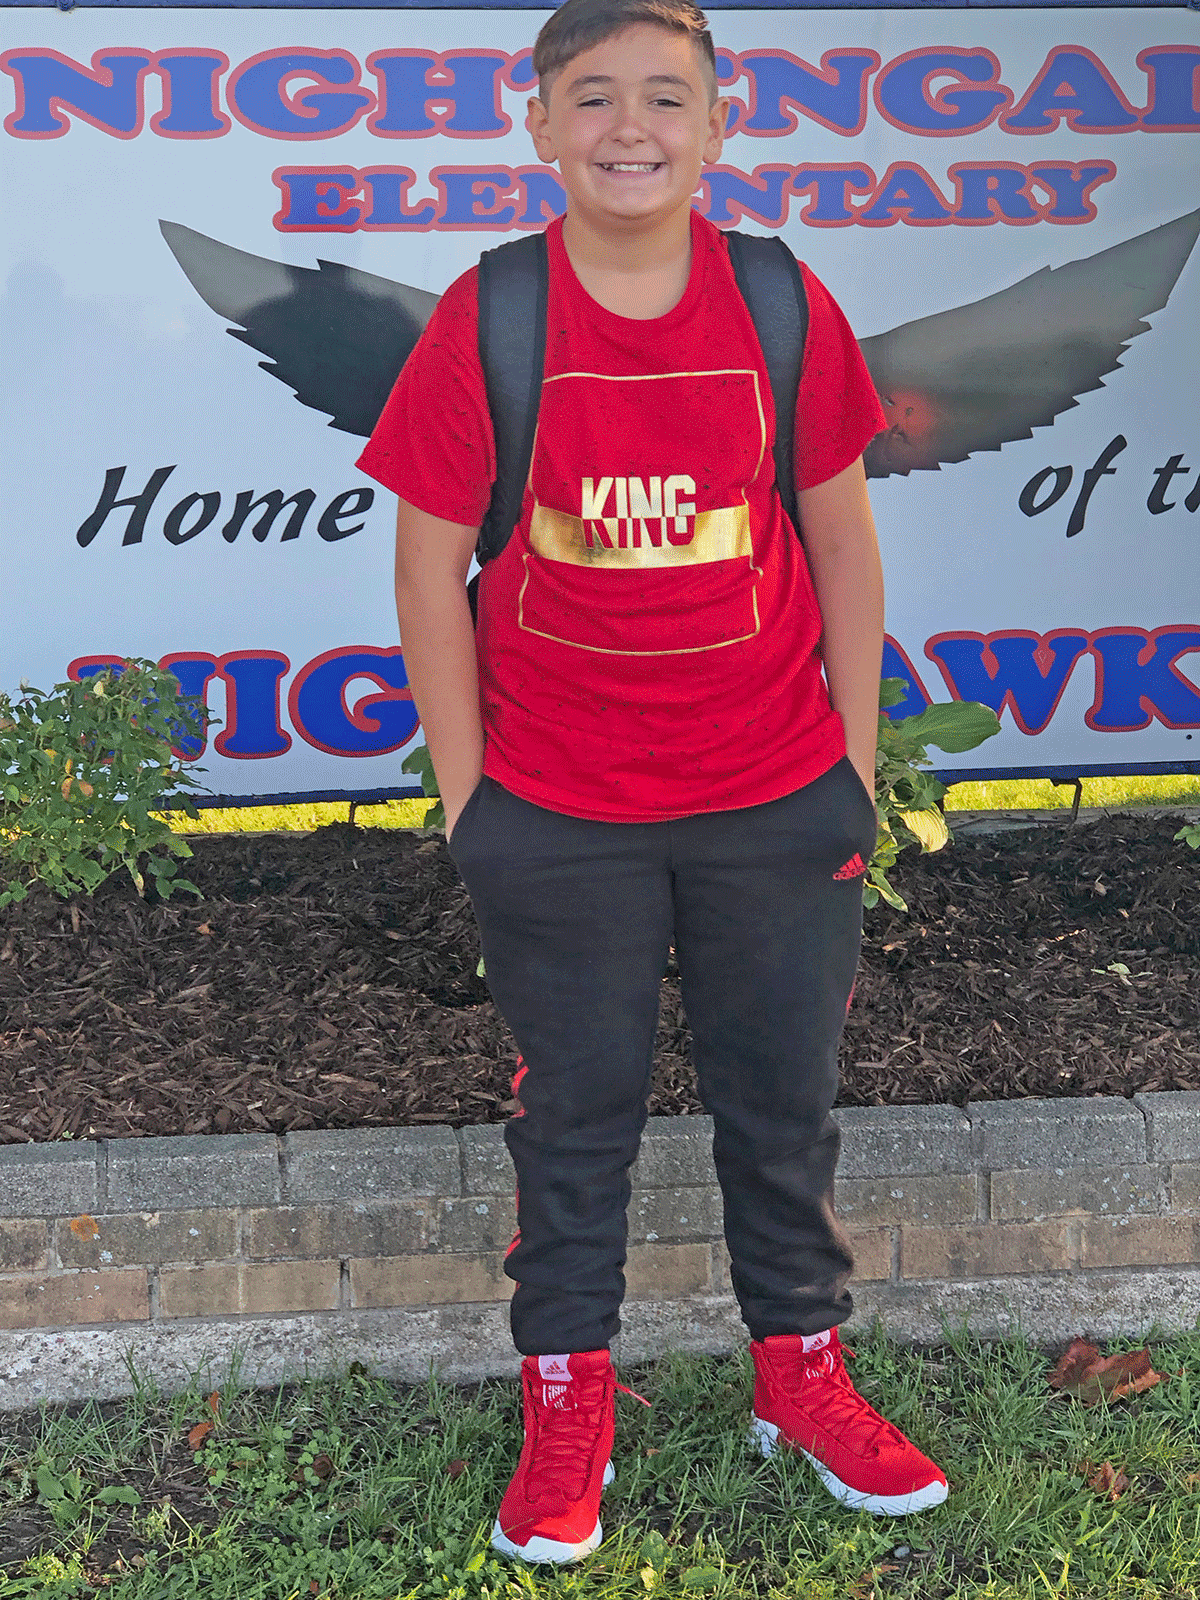 Jamesdyn Barse began his first day of sixth grade at Nightengale Elementary at Massena Central School. Photo submitted by Carisa Barse.